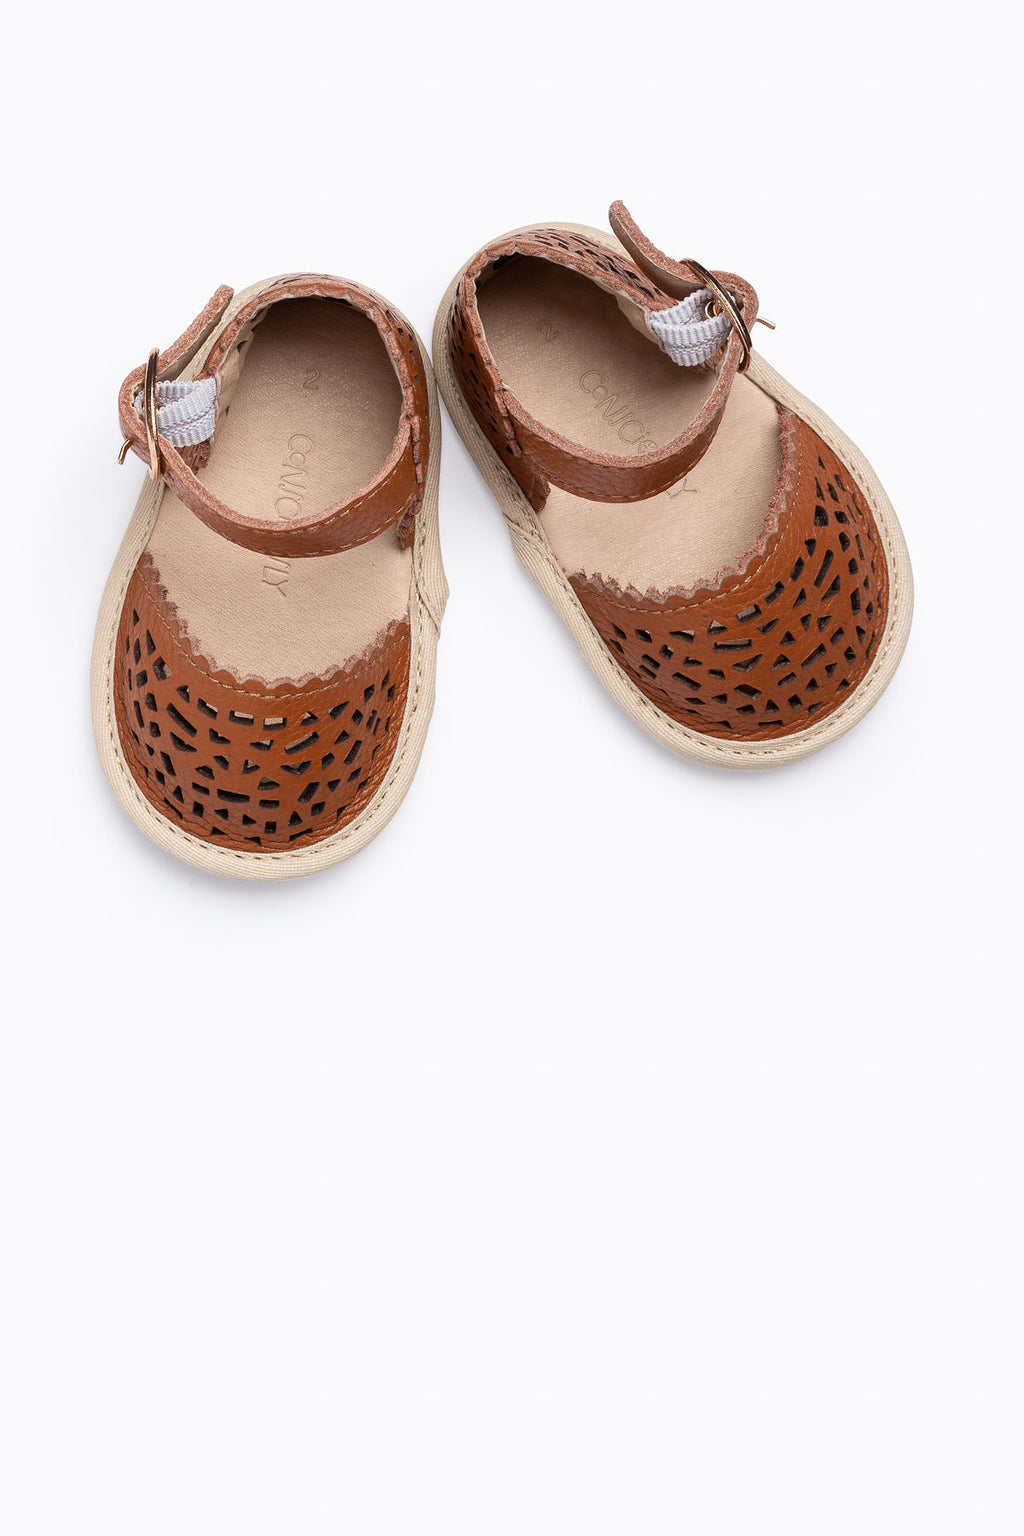 Conciously Baby: Soft Sole Baby Leather Sandal in Phuket Brown